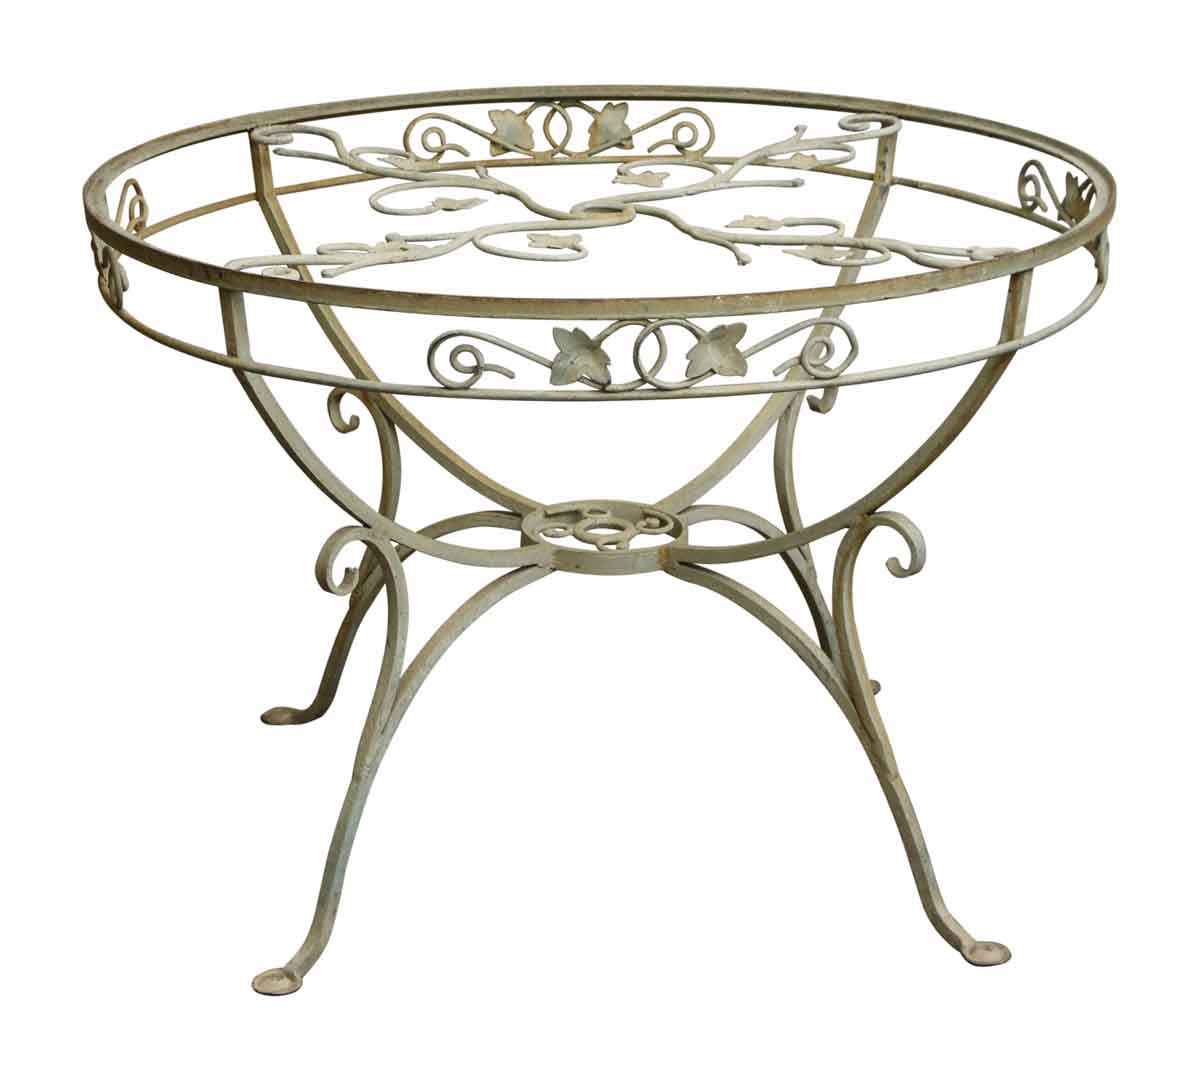 Wrought Iron Patio Table With Vine Detail